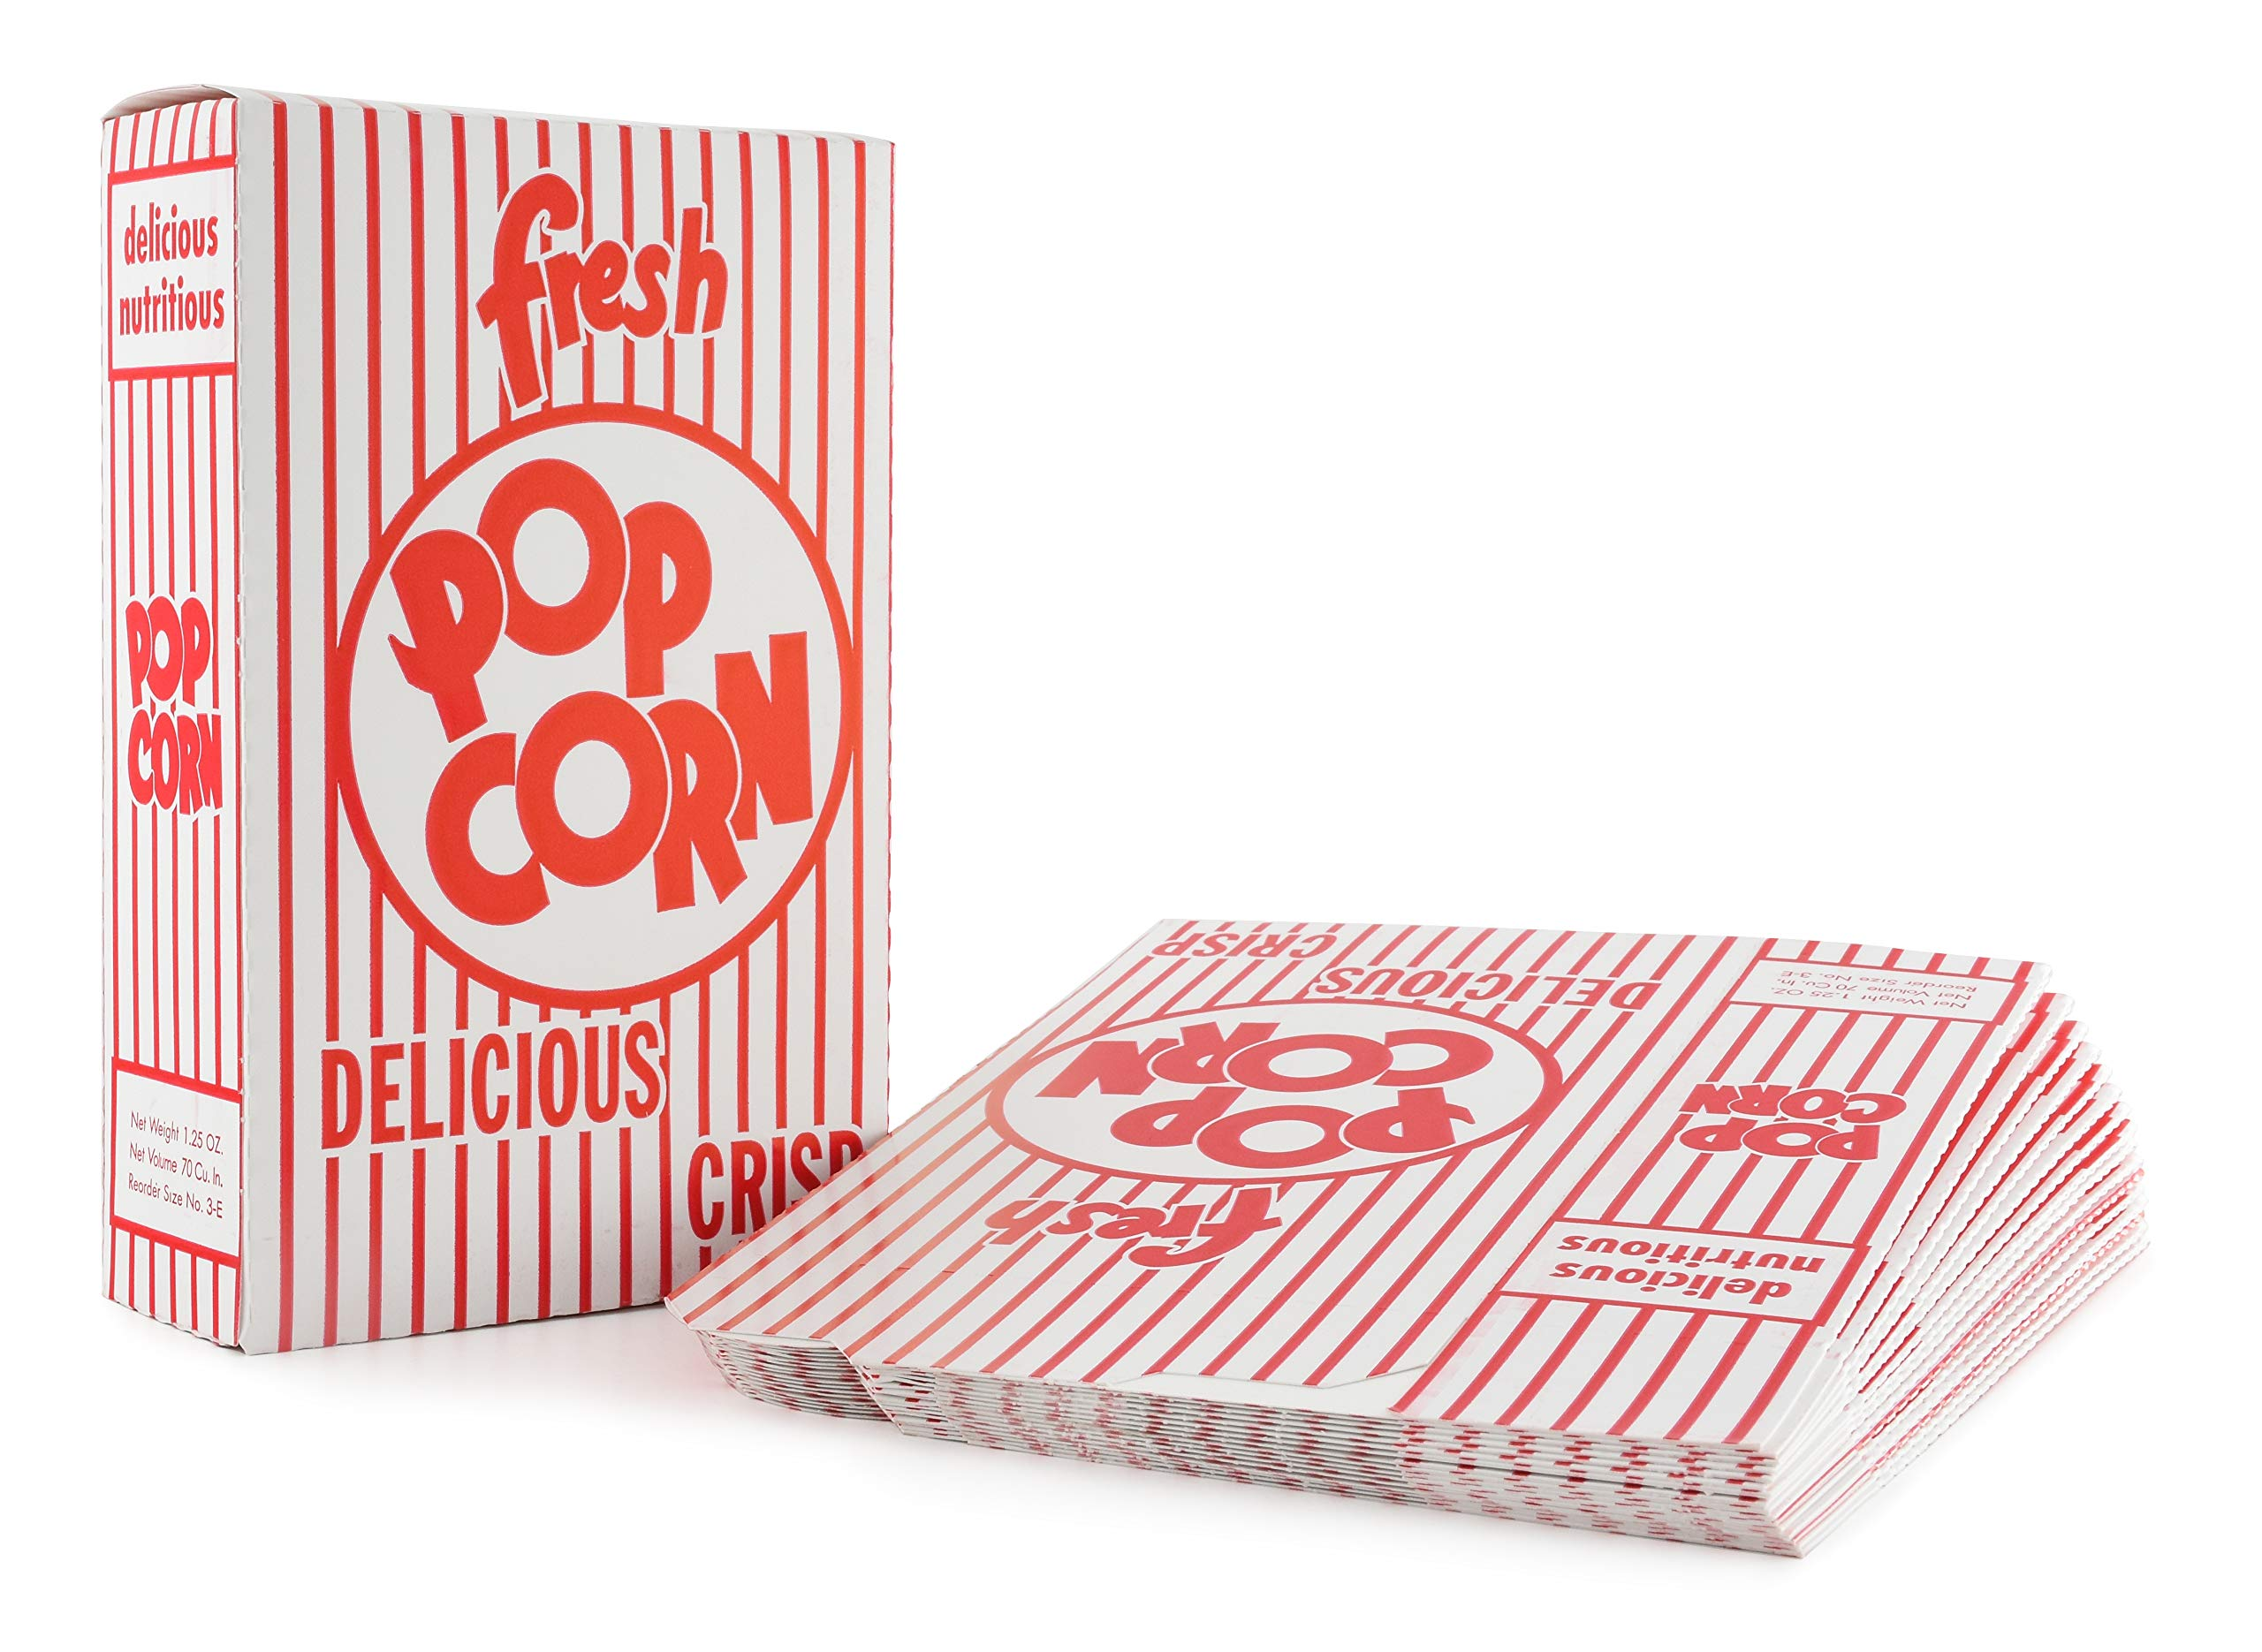 Snappy Popcorn 3-E Red and White Close Top Popcorn Boxes, 1.25 Oz, 100 Count by Snappy Popcorn